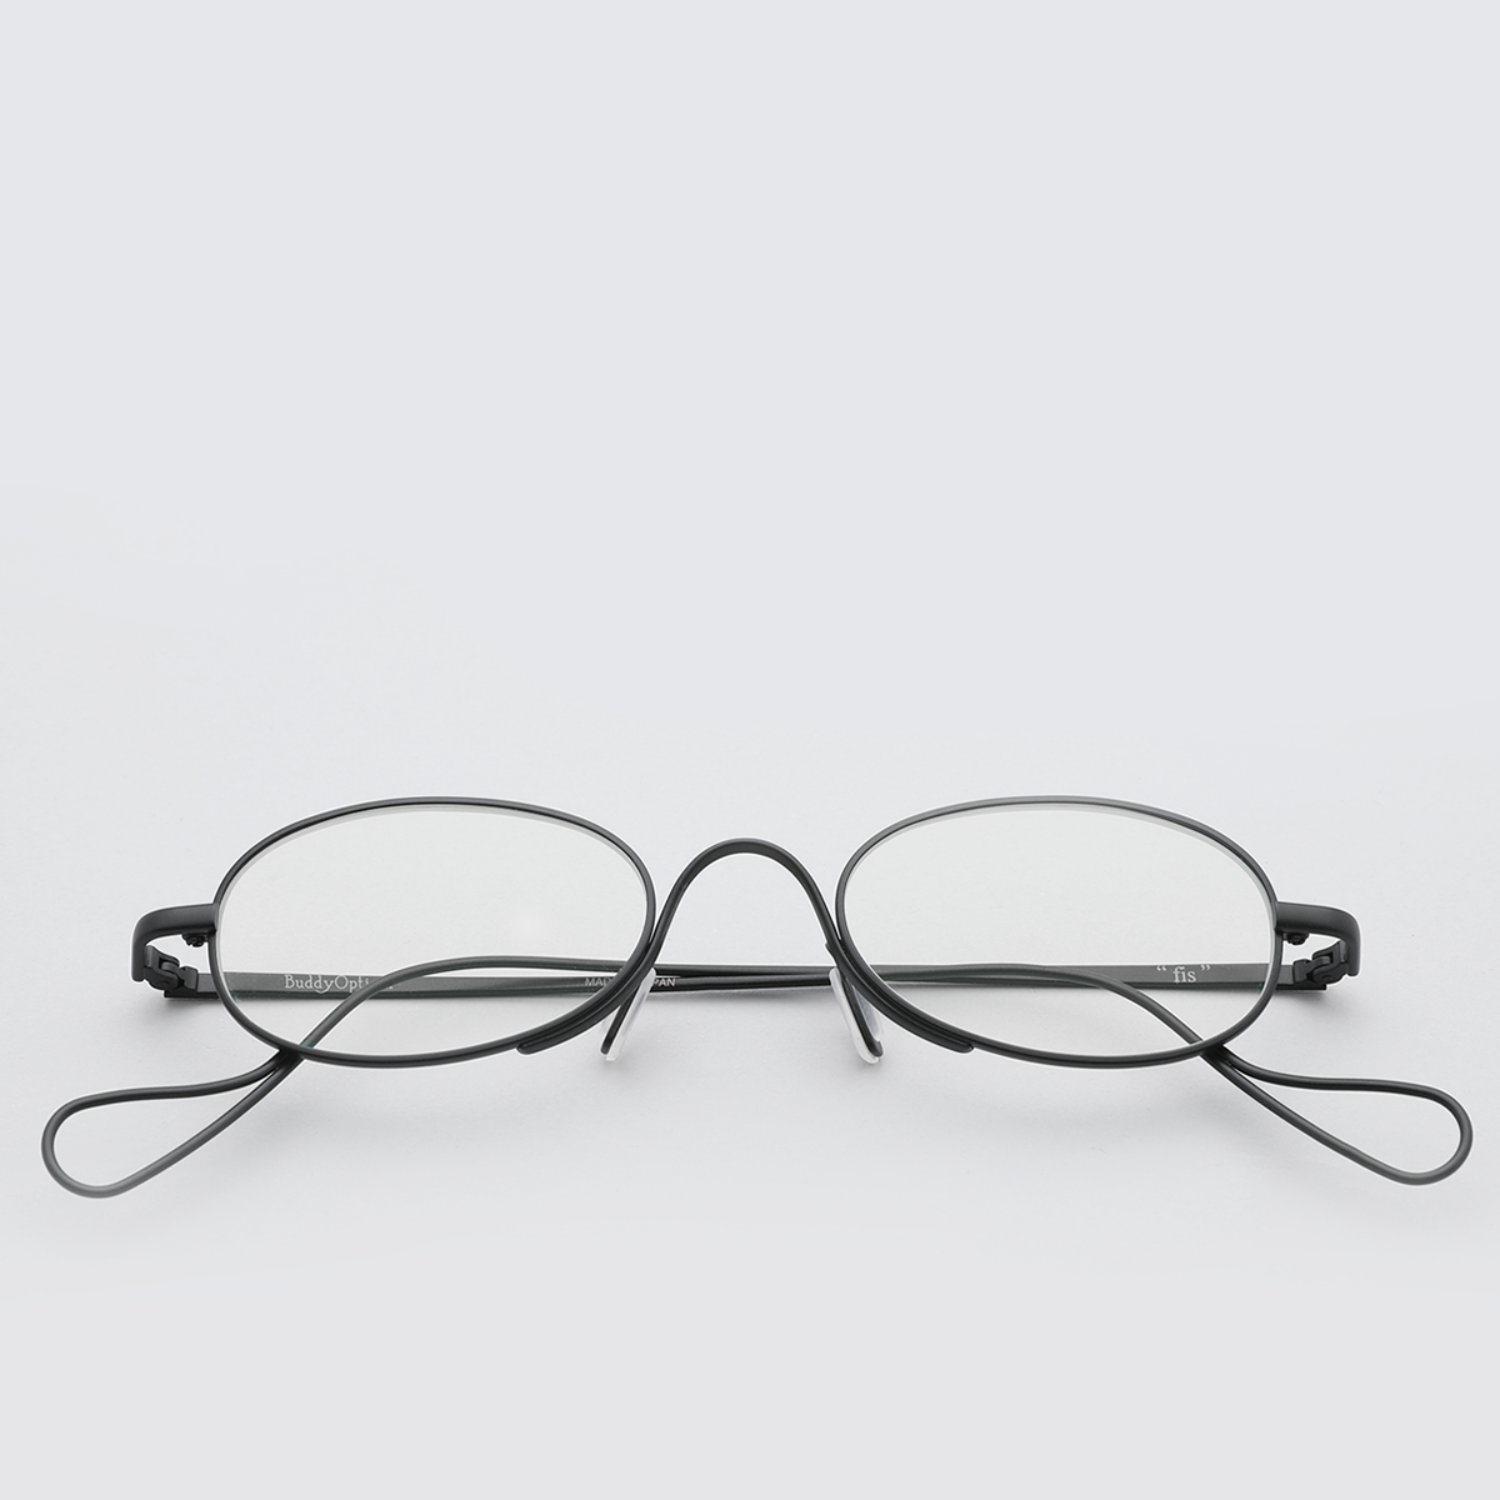 [버디옵티컬안경] fis MATTE BLACK (Buddy Optical)